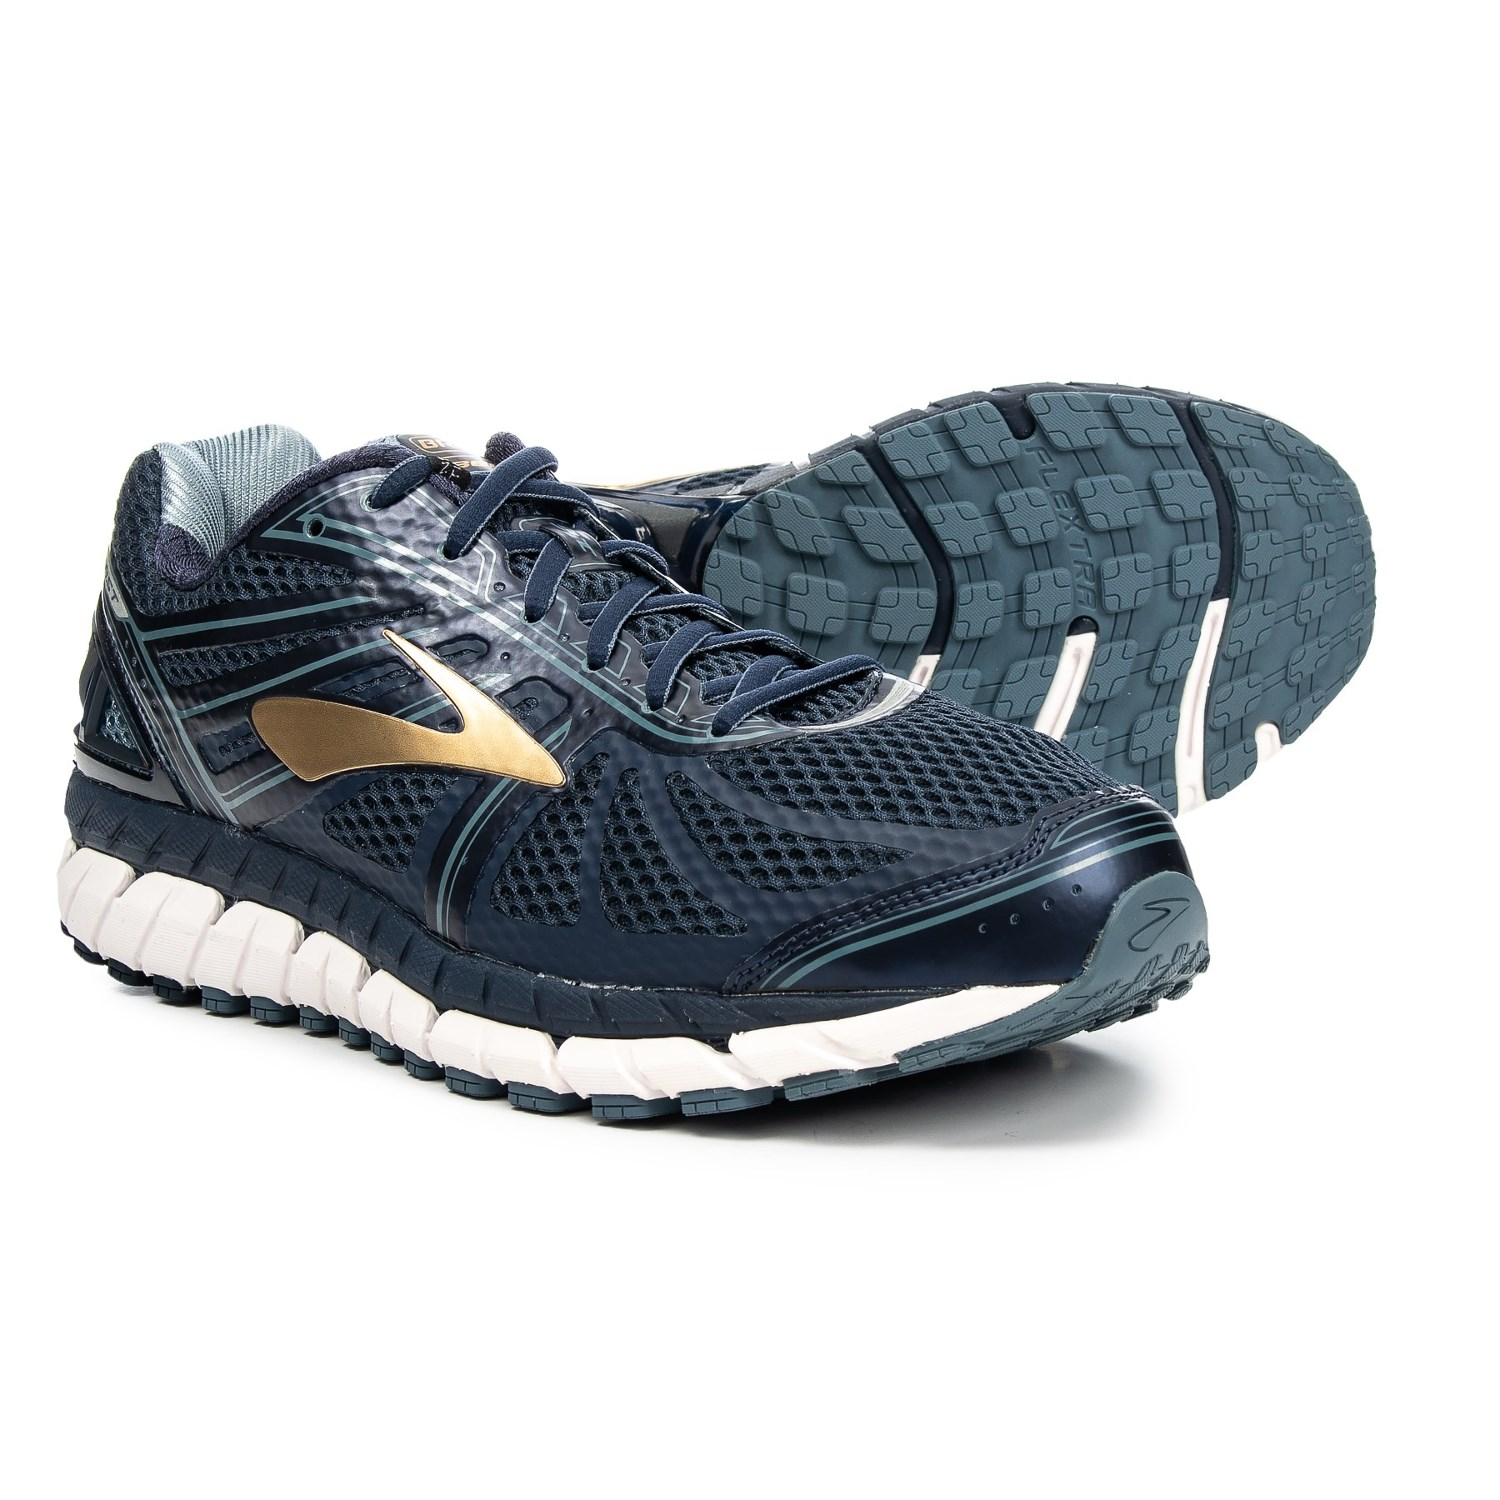 e6986b3be9a Brooks beast running shoes for men in peacoat navy china blue gold jpg  1500x1500 Brooks beast